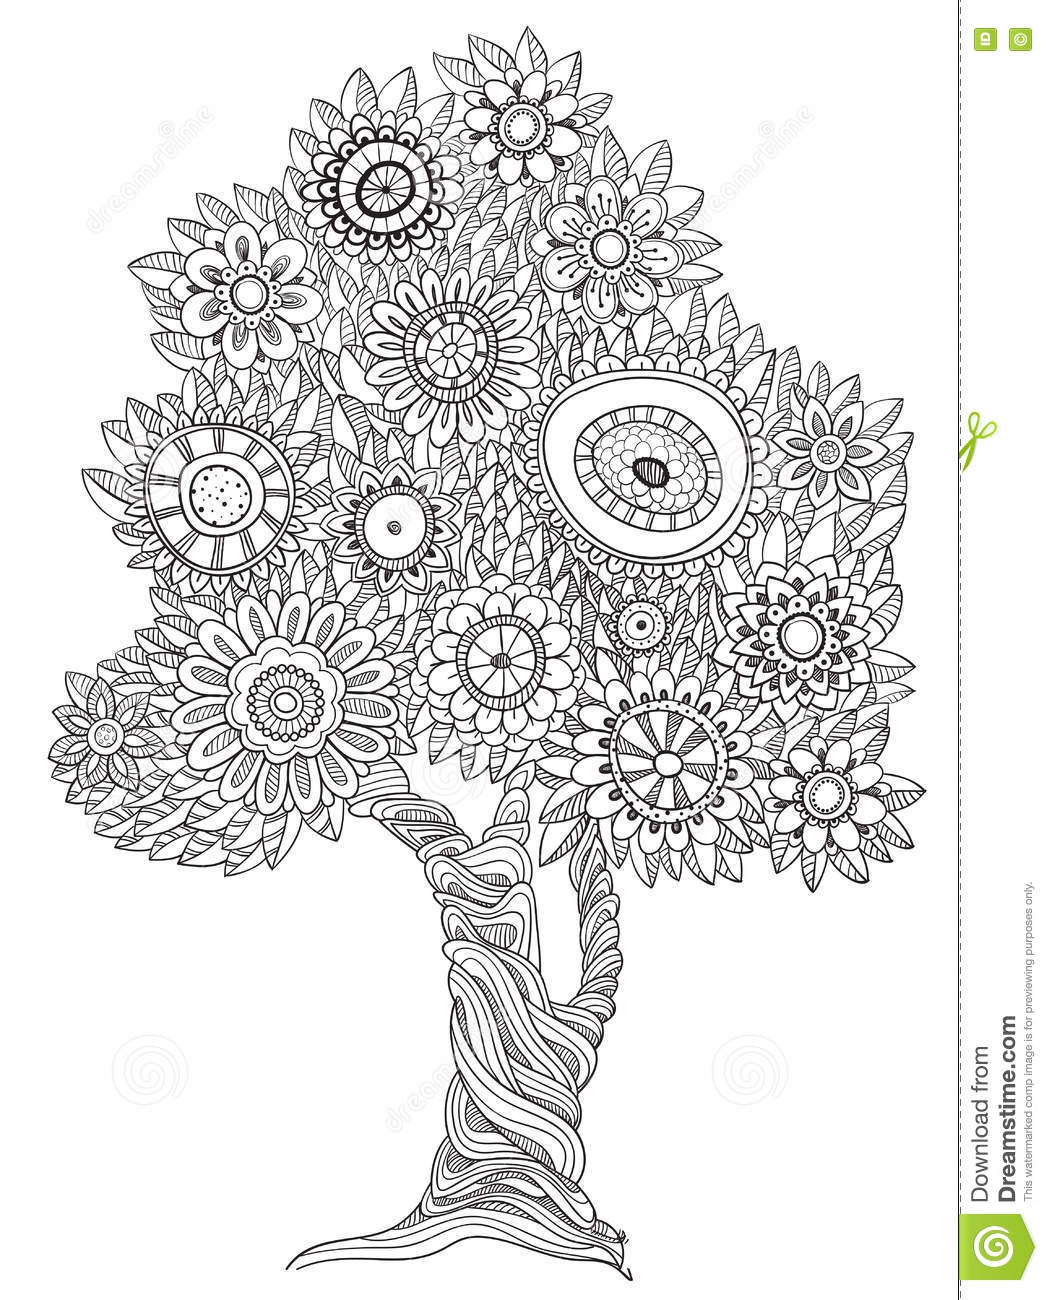 Floral doodle tree. stock vector. Illustration of east